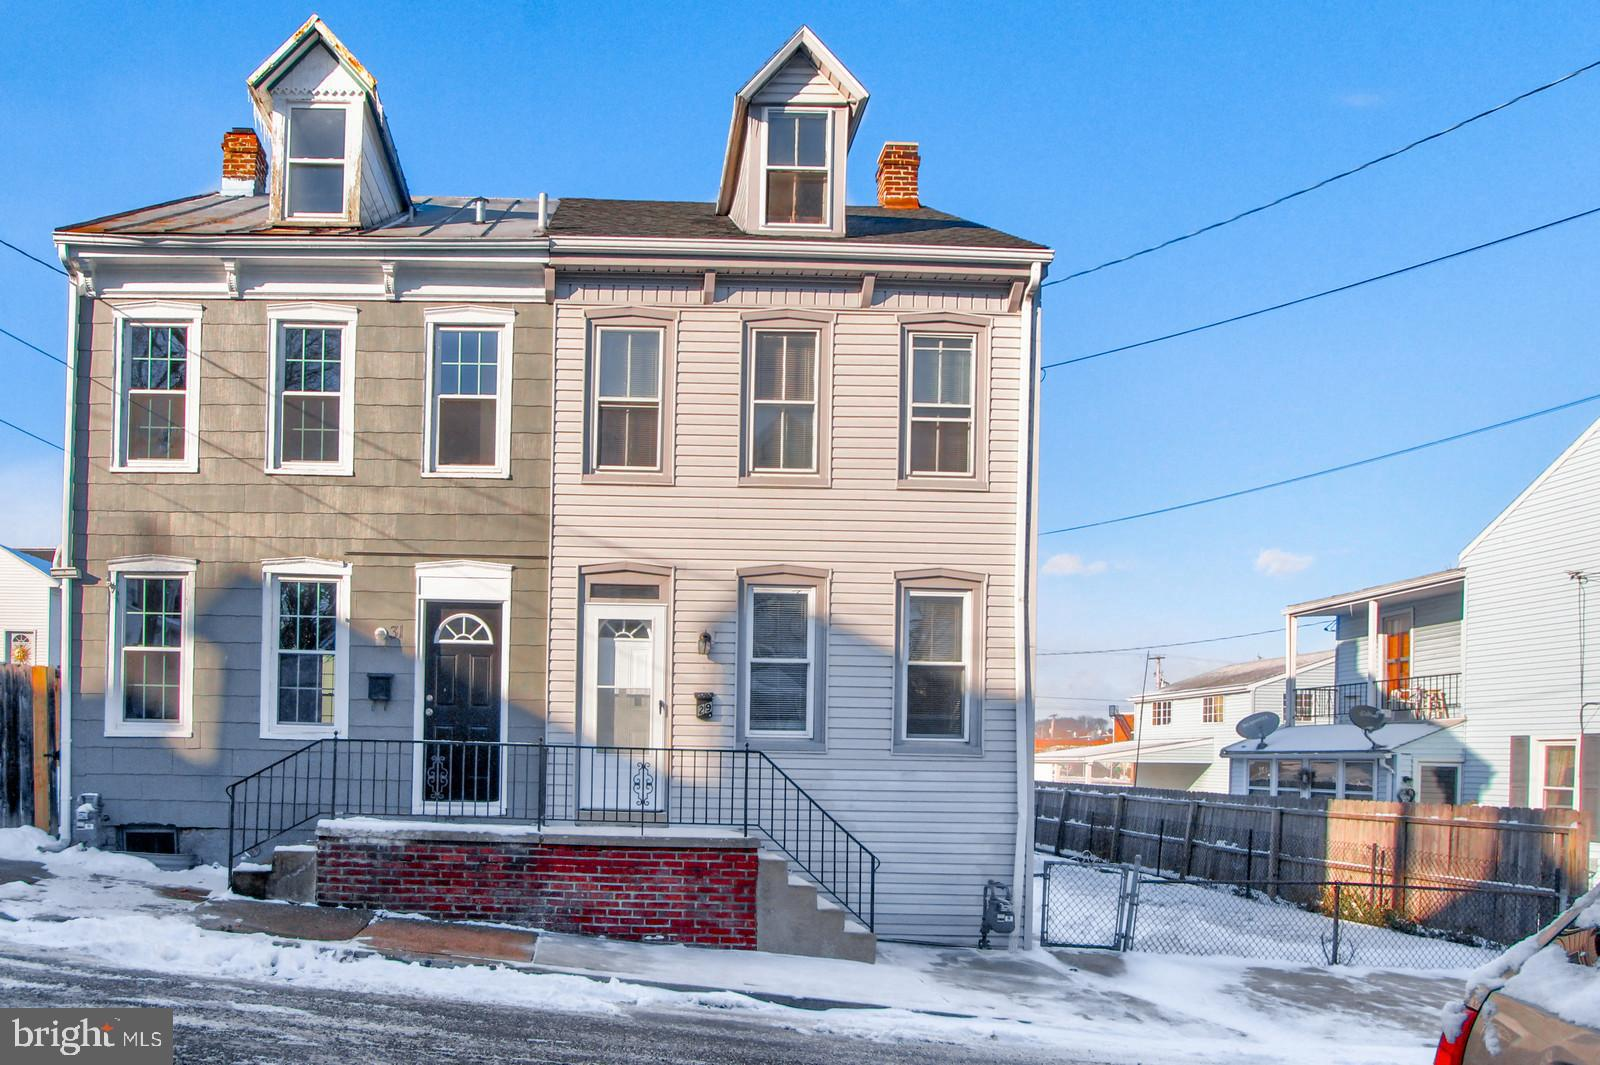 29 W 8TH AVENUE, YORK, PA 17404